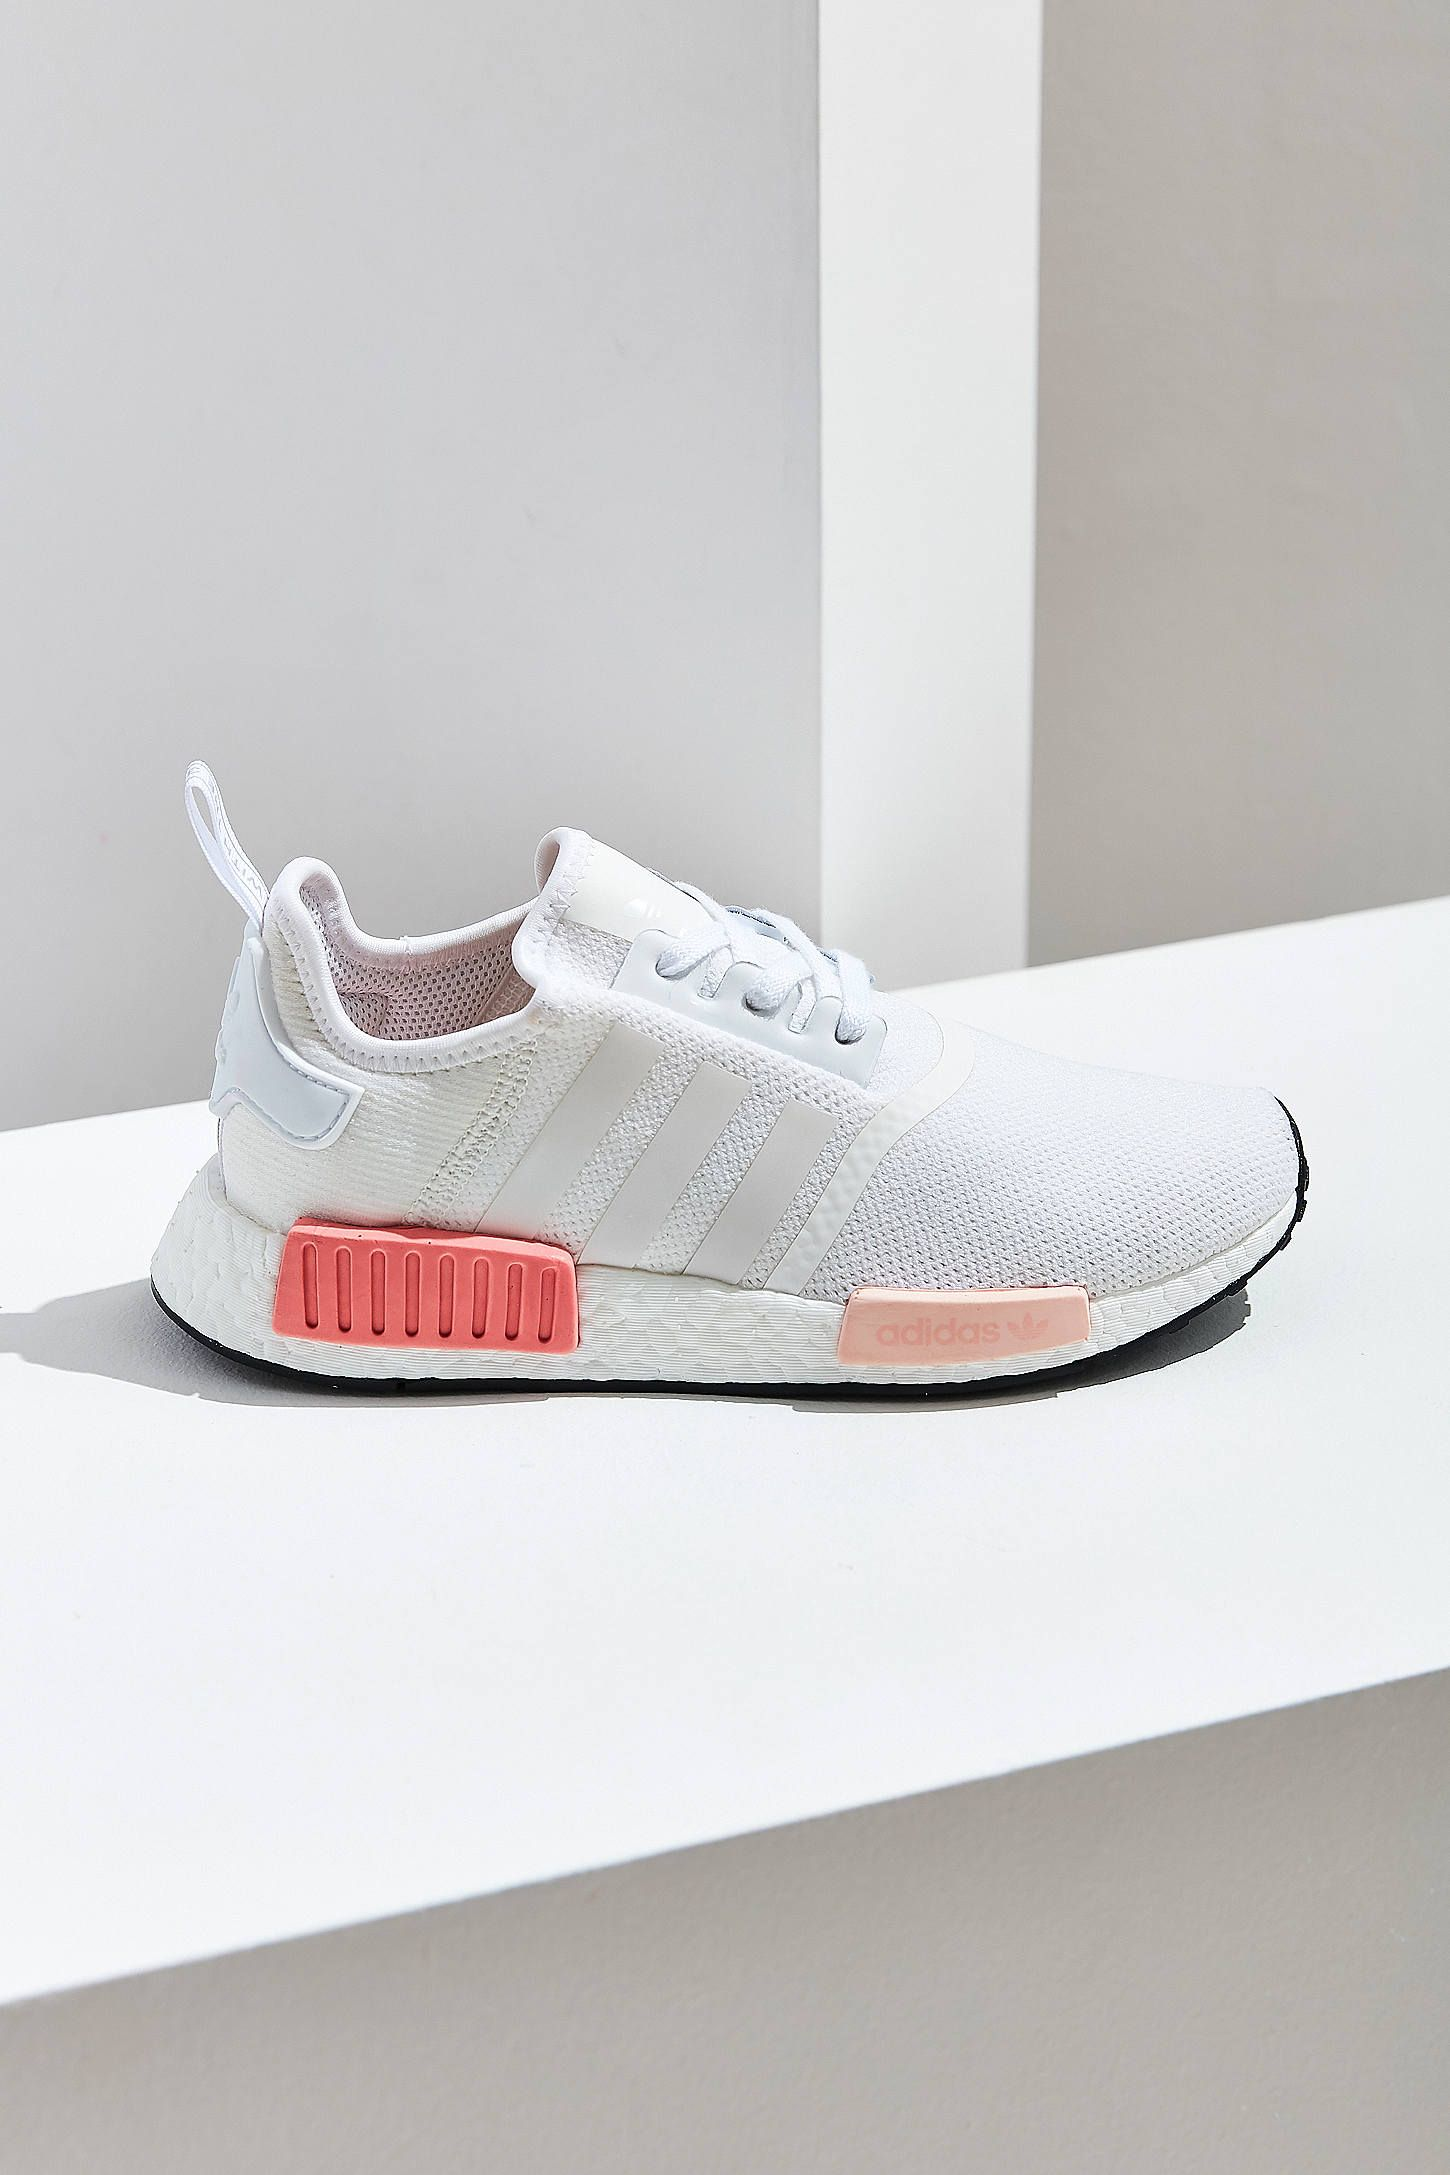 adidas nmd r1 sneaker